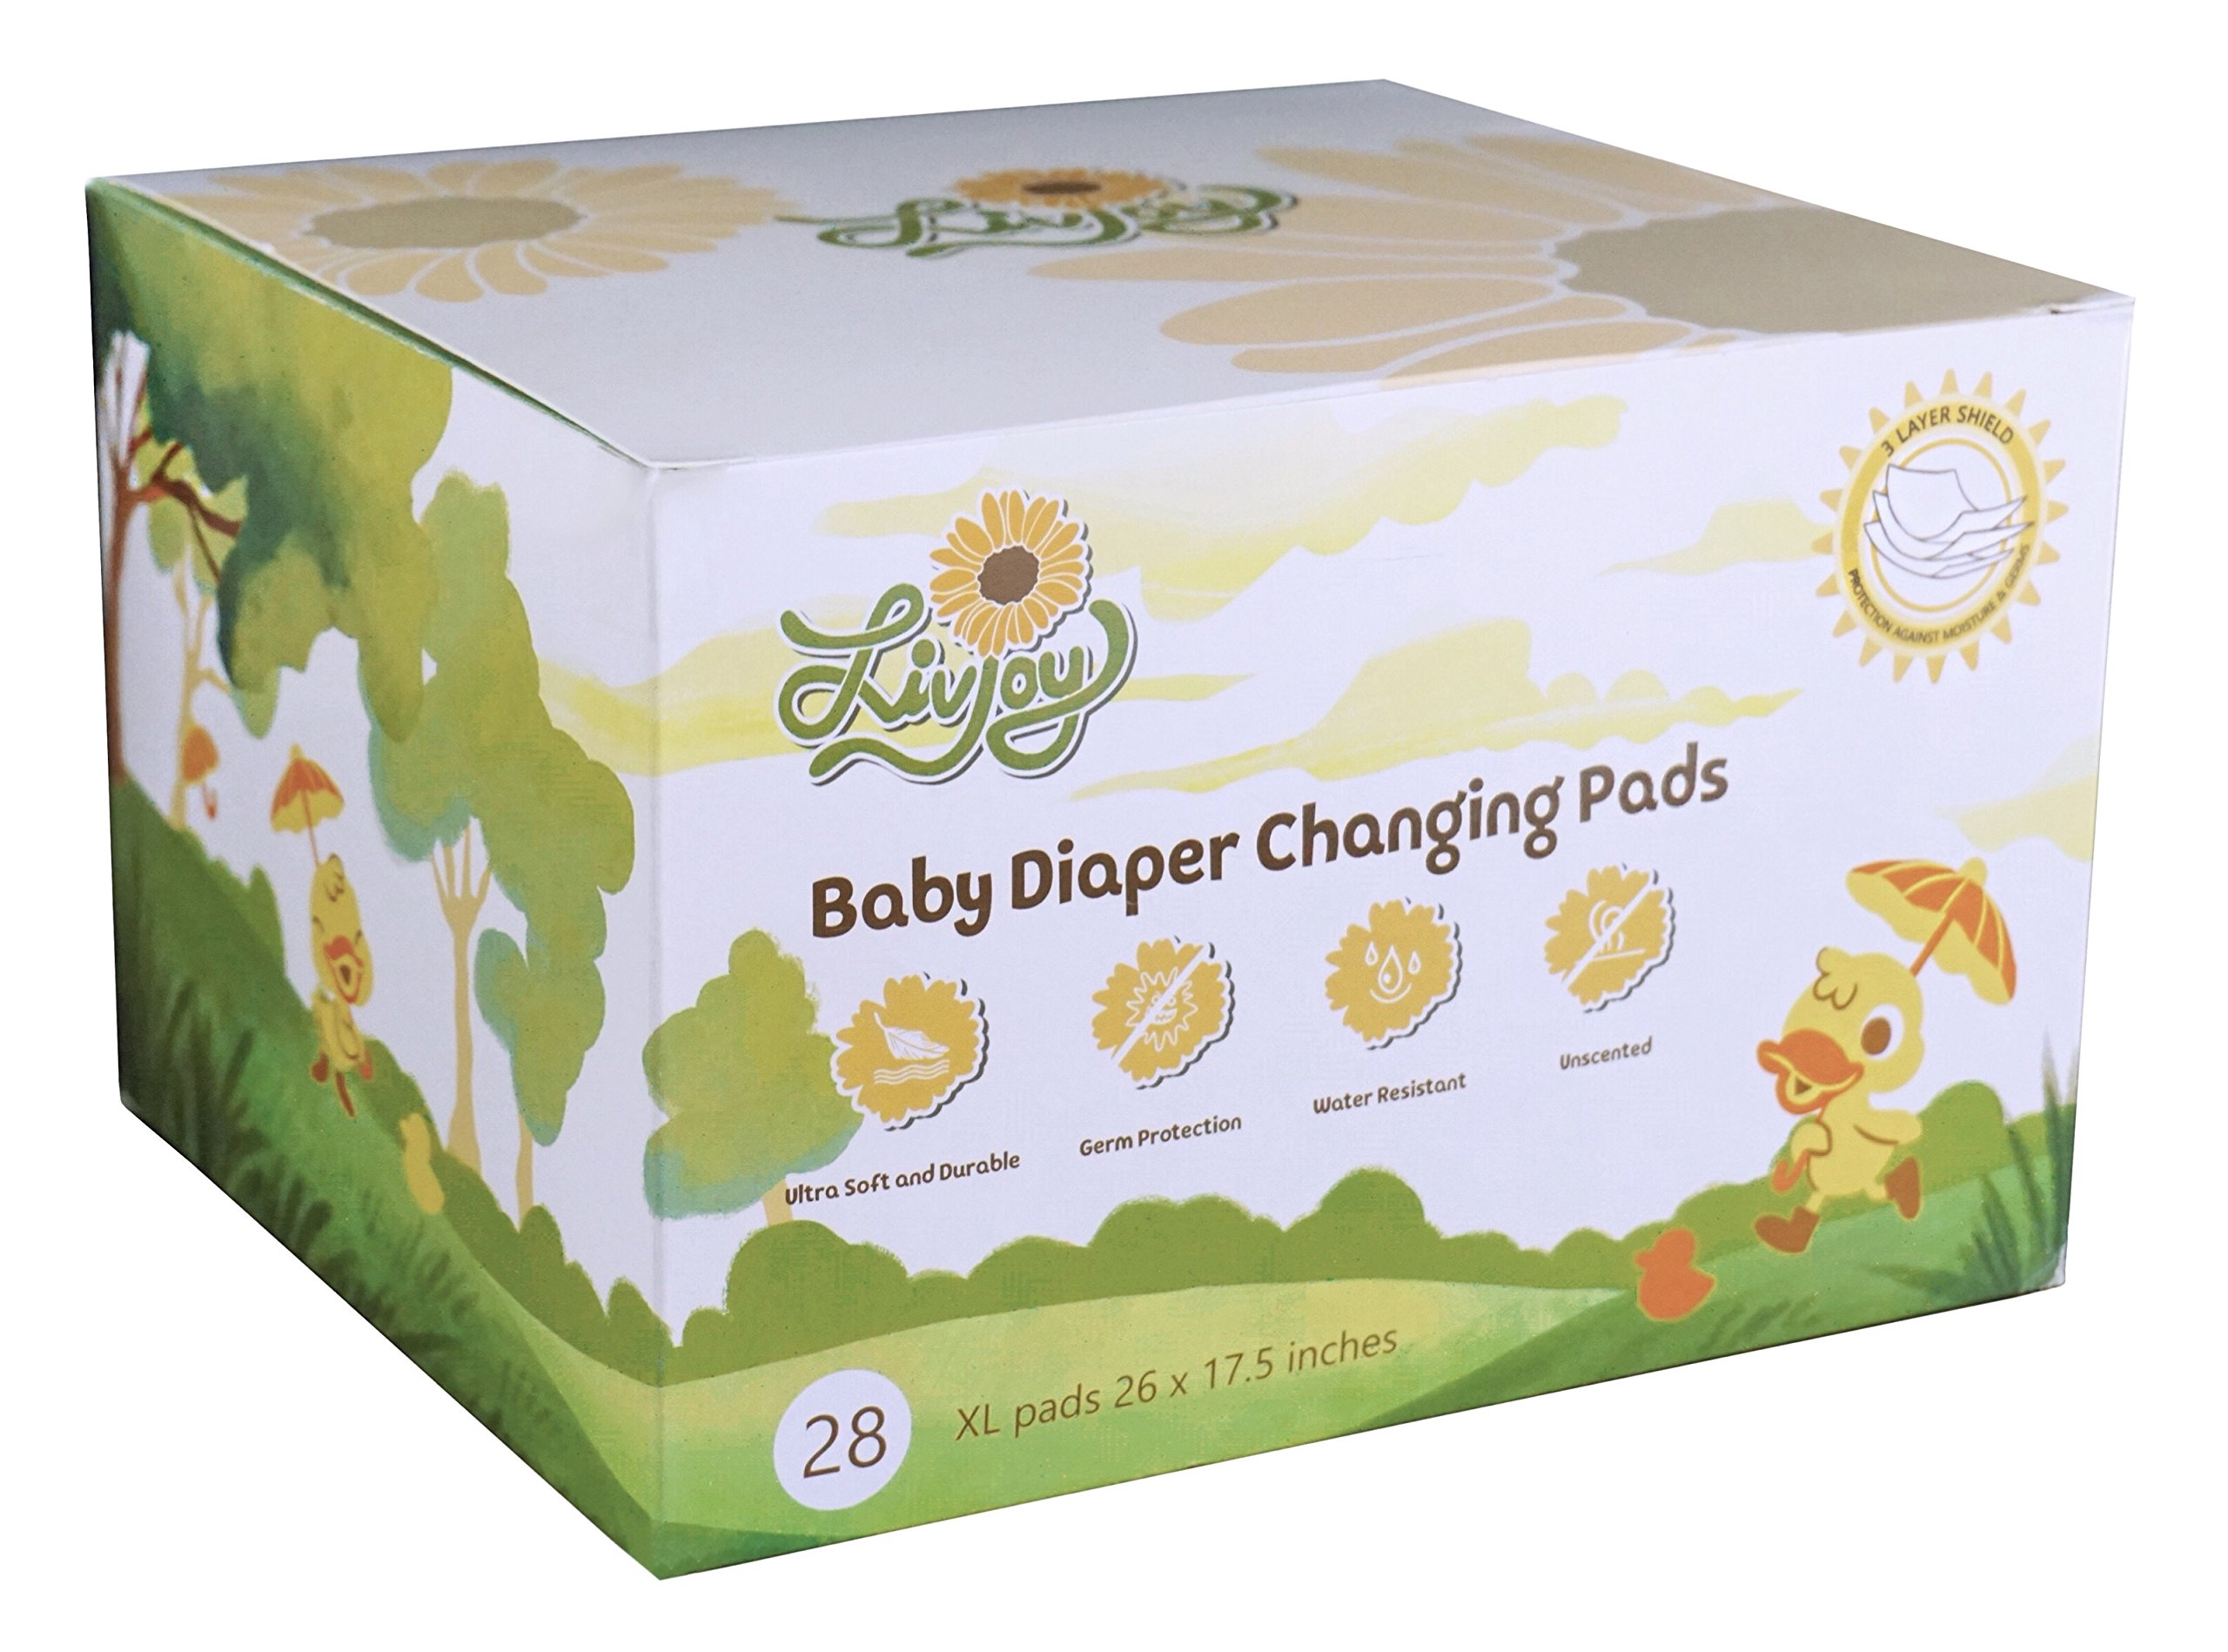 LivJoy Baby Diaper Disposable Changing Pads   Portable Infant Toddler 100%  Waterproof Mats, ...